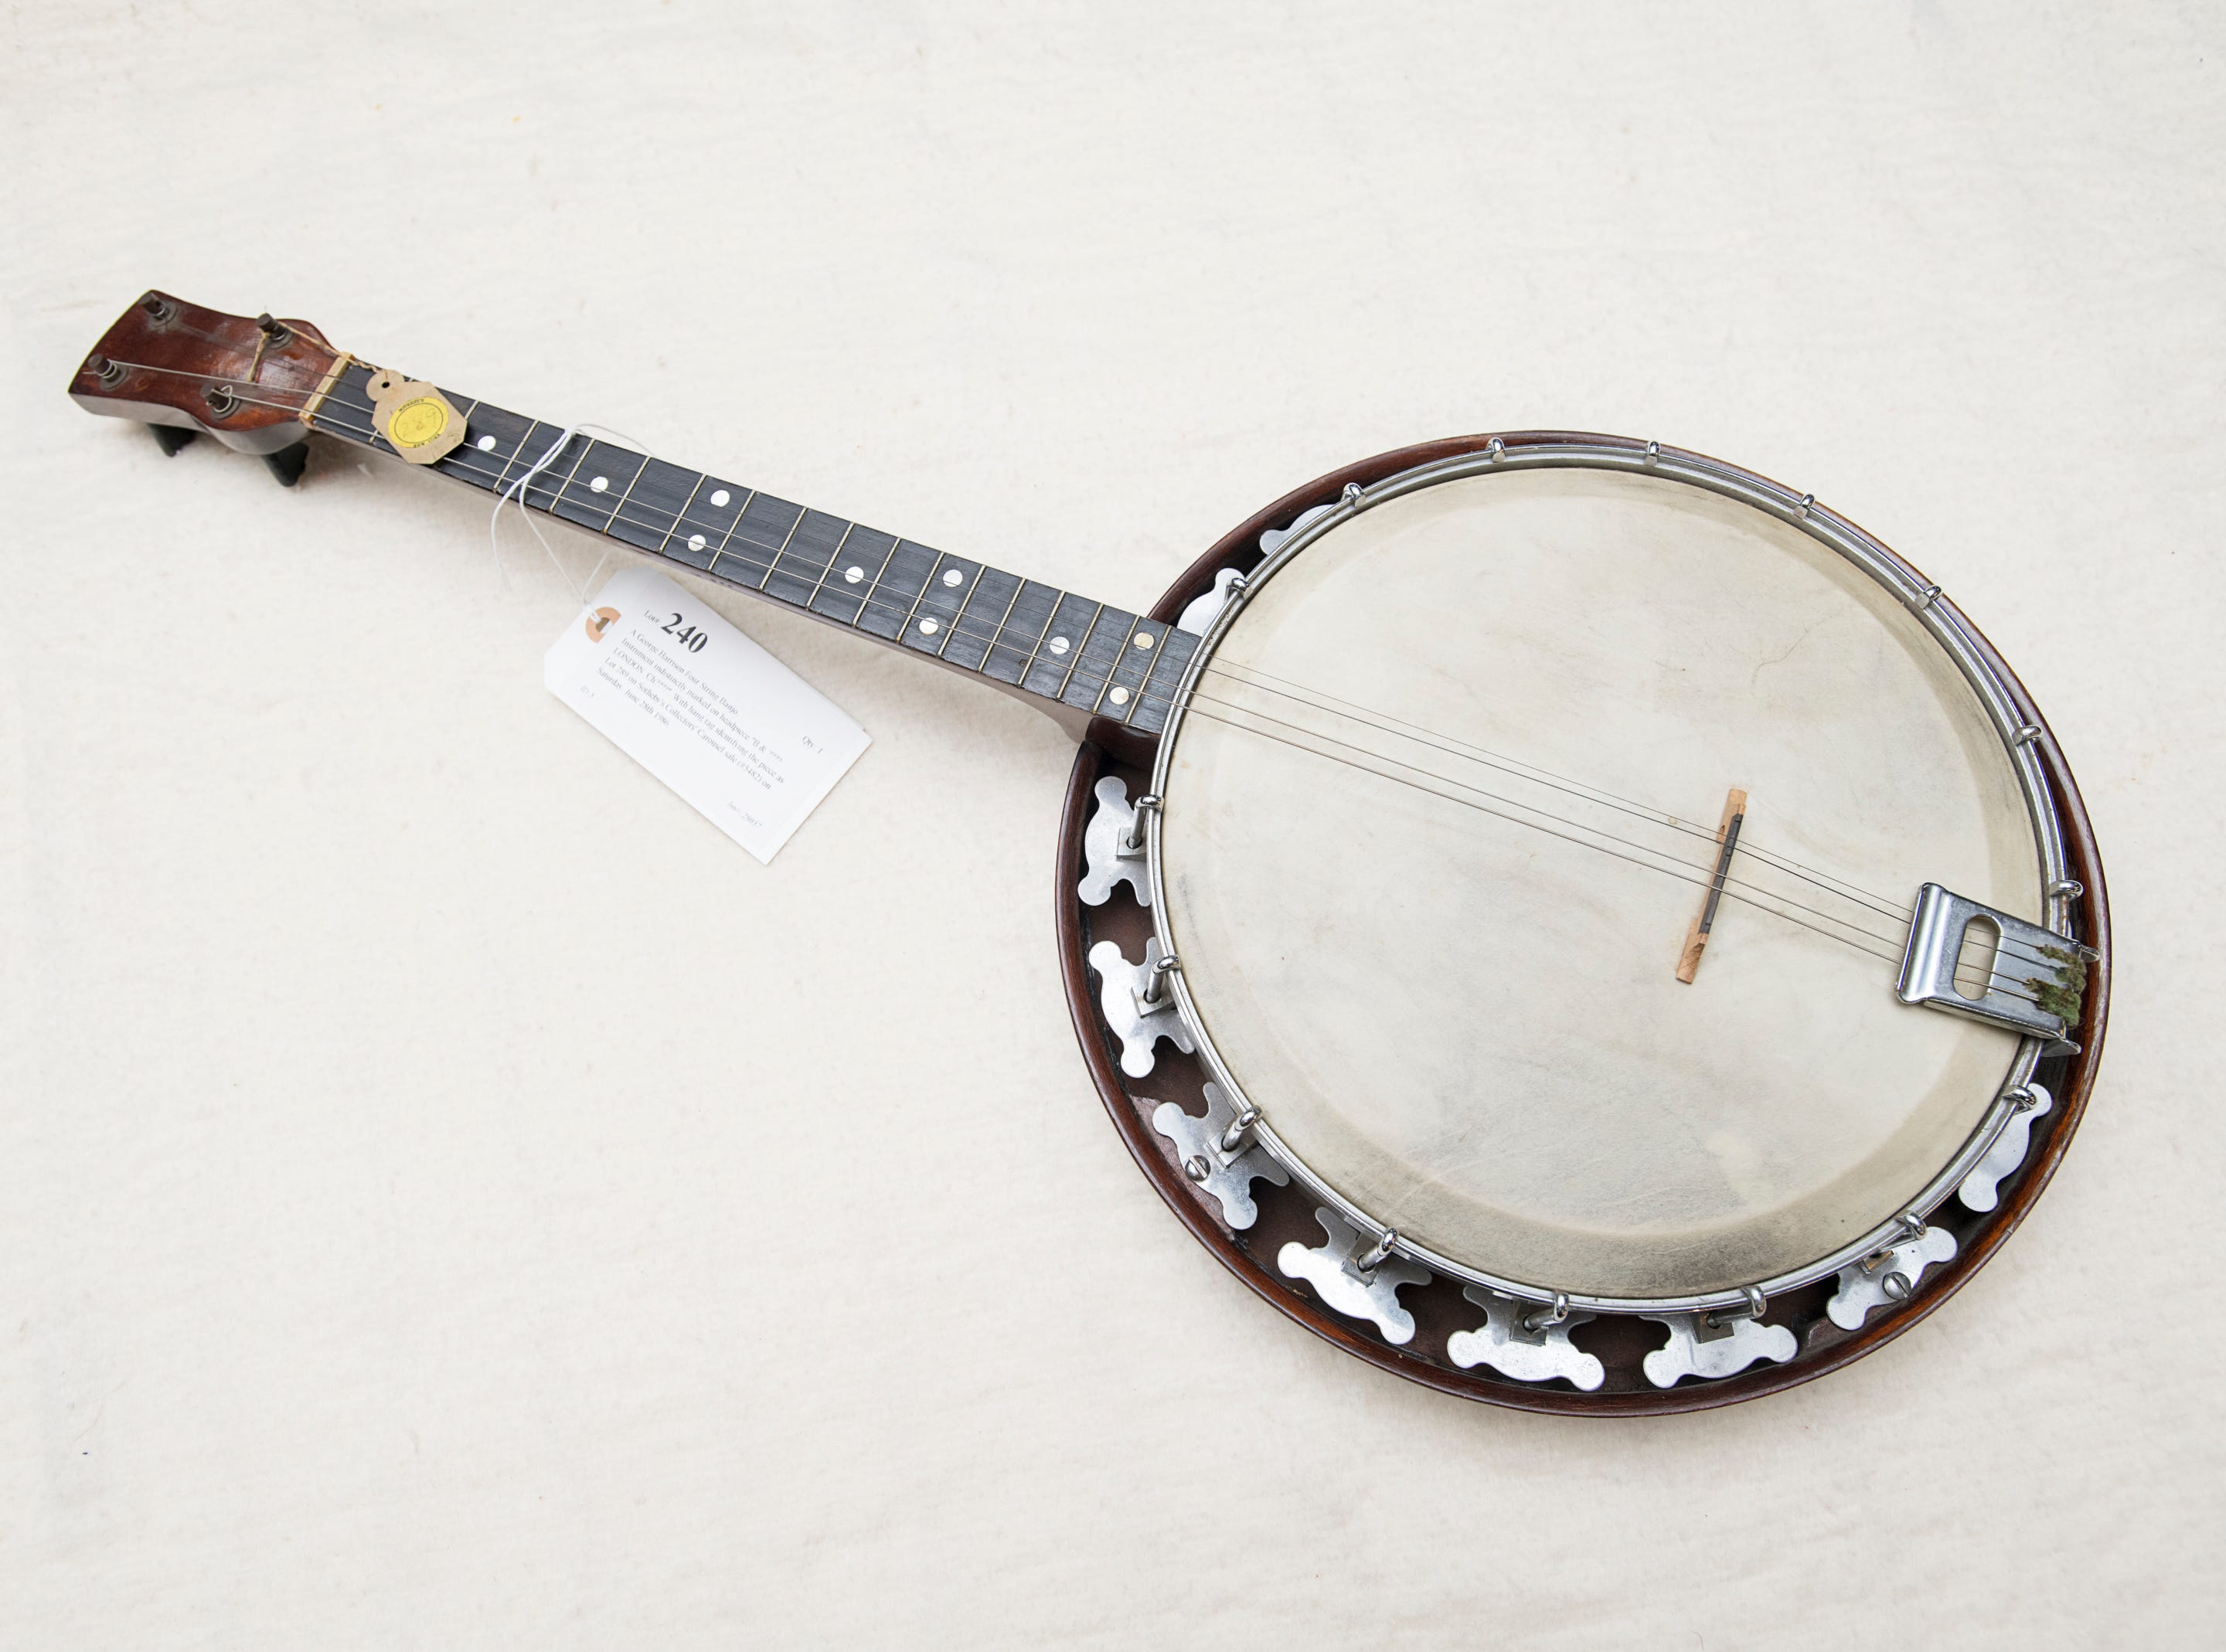 A George Harrison banjo at Garth's Auction & Antiques on Navy Boulevard in Pensacola on Wednesday, November 28, 2018.  The banjo and other items will be up for sale during their auction on Friday, November 30th.